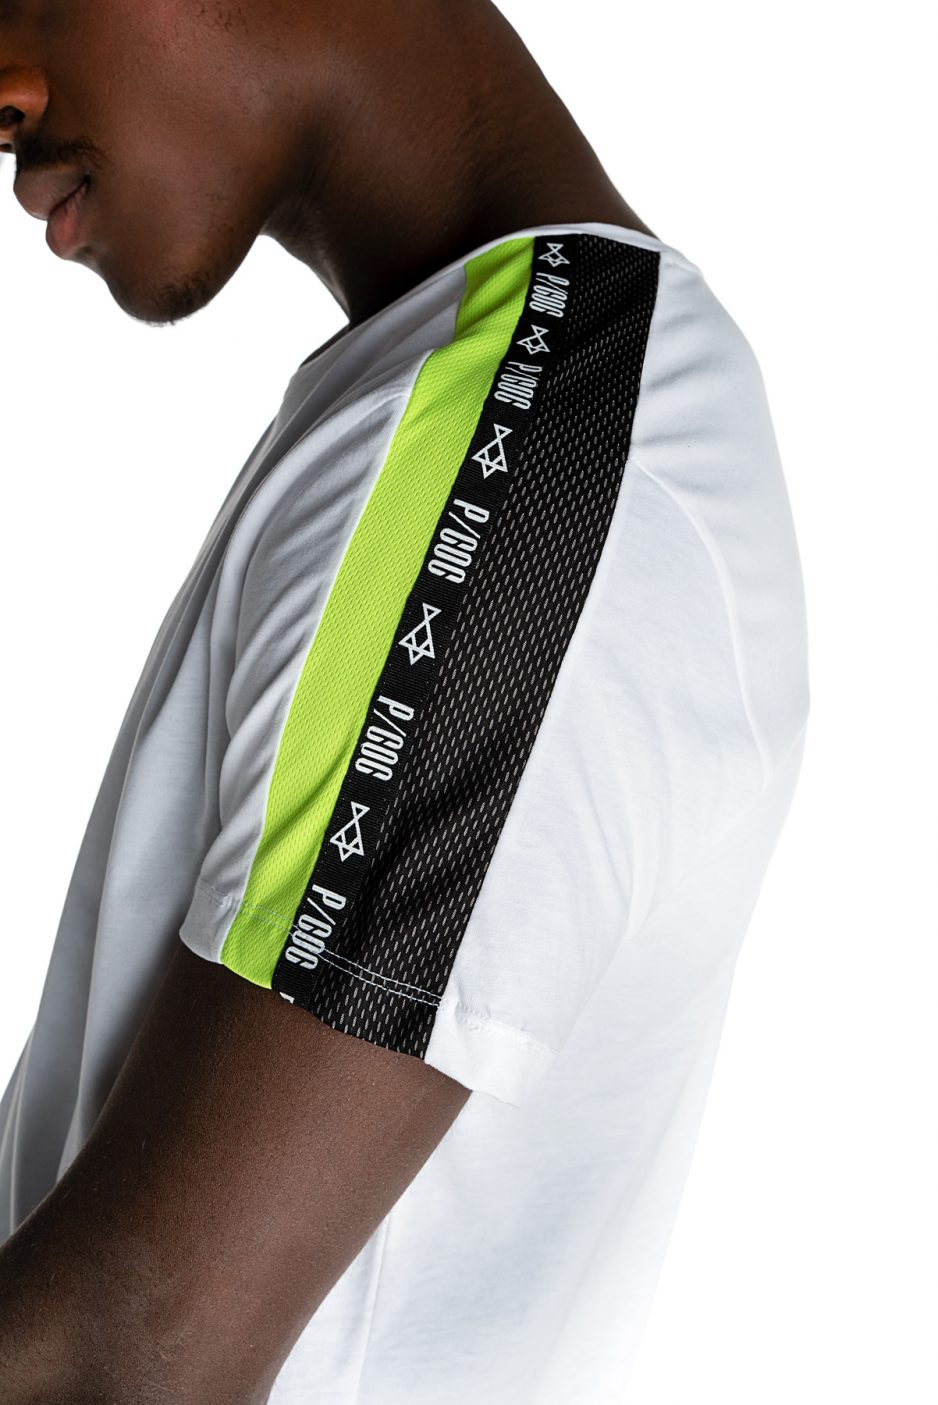 White P/COC t-shirt with green fluo details